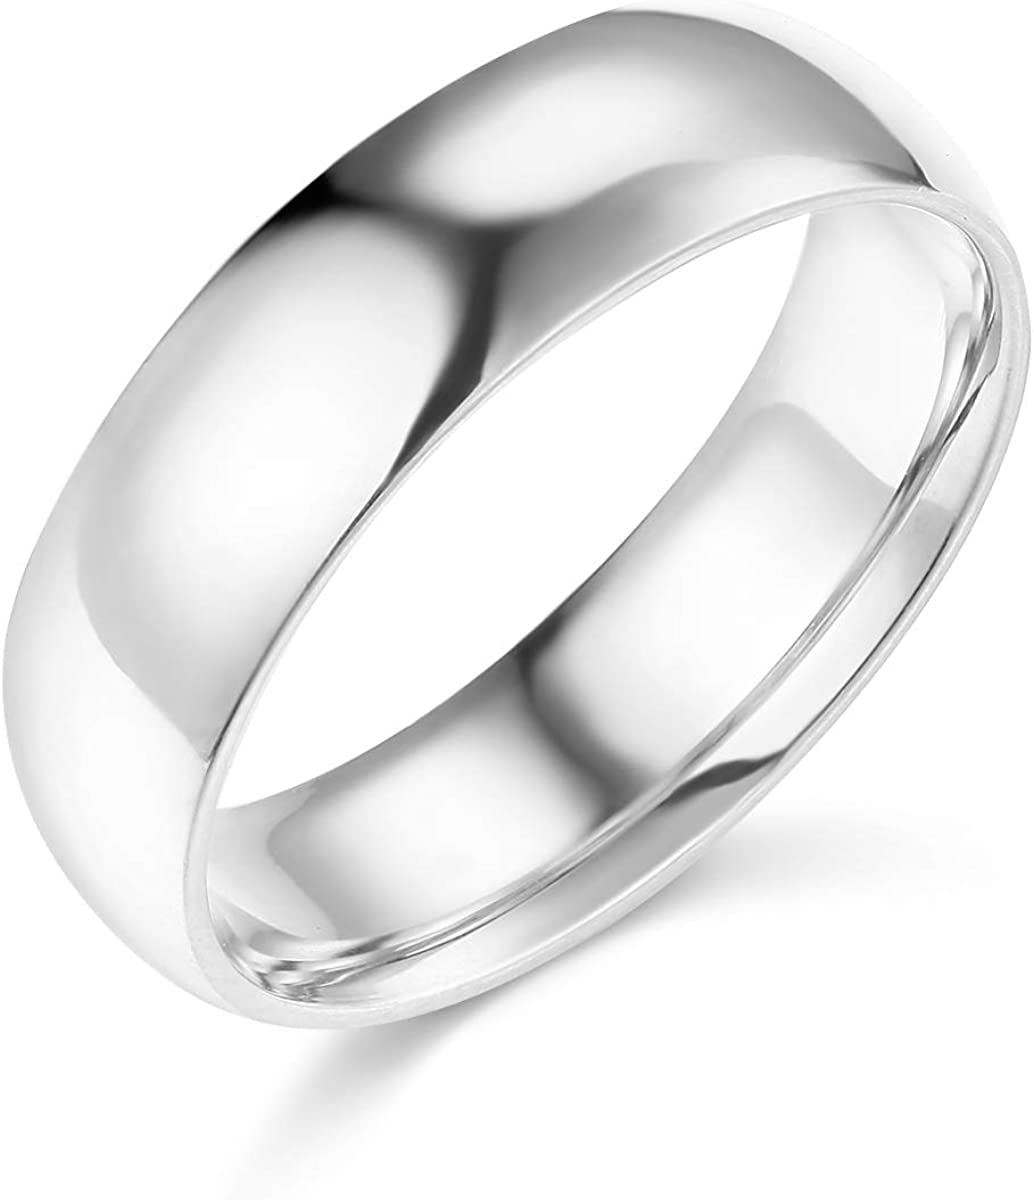 Wellingsale Mens 14k Yellow -OR- White Gold Solid 6mm COMFORT FIT Wedding Band Ring